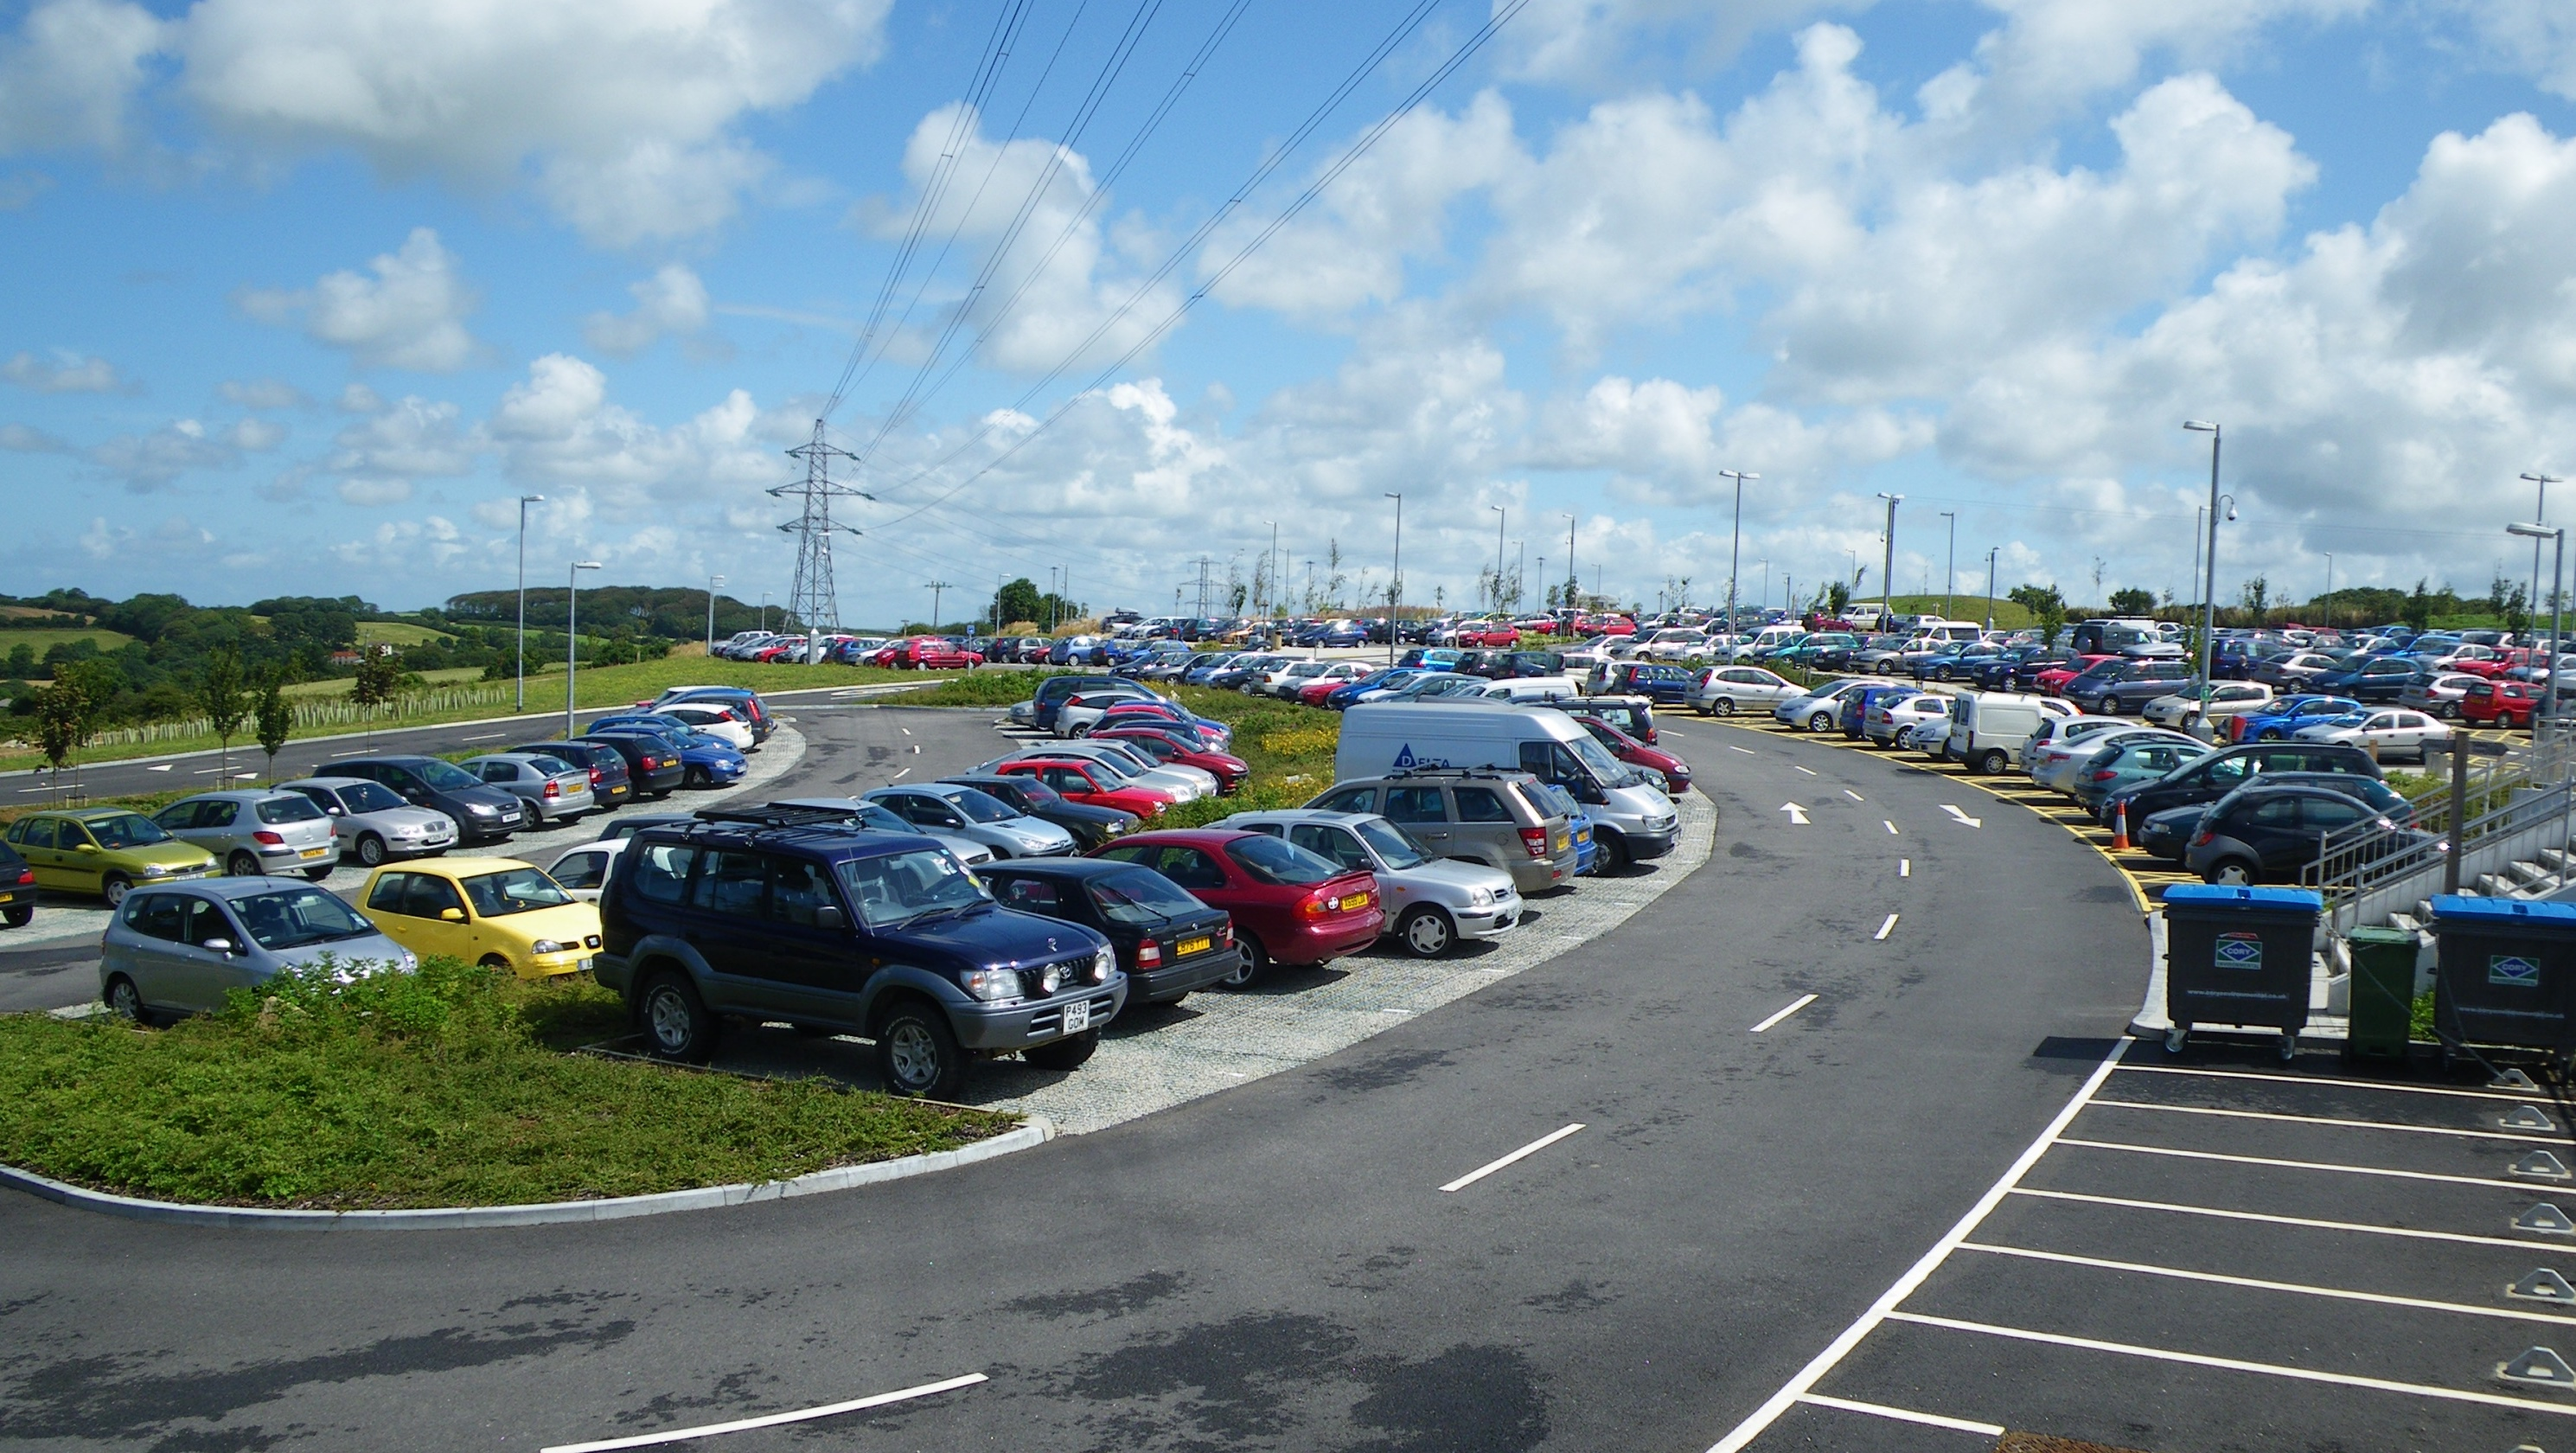 Threemilestone Park and ride